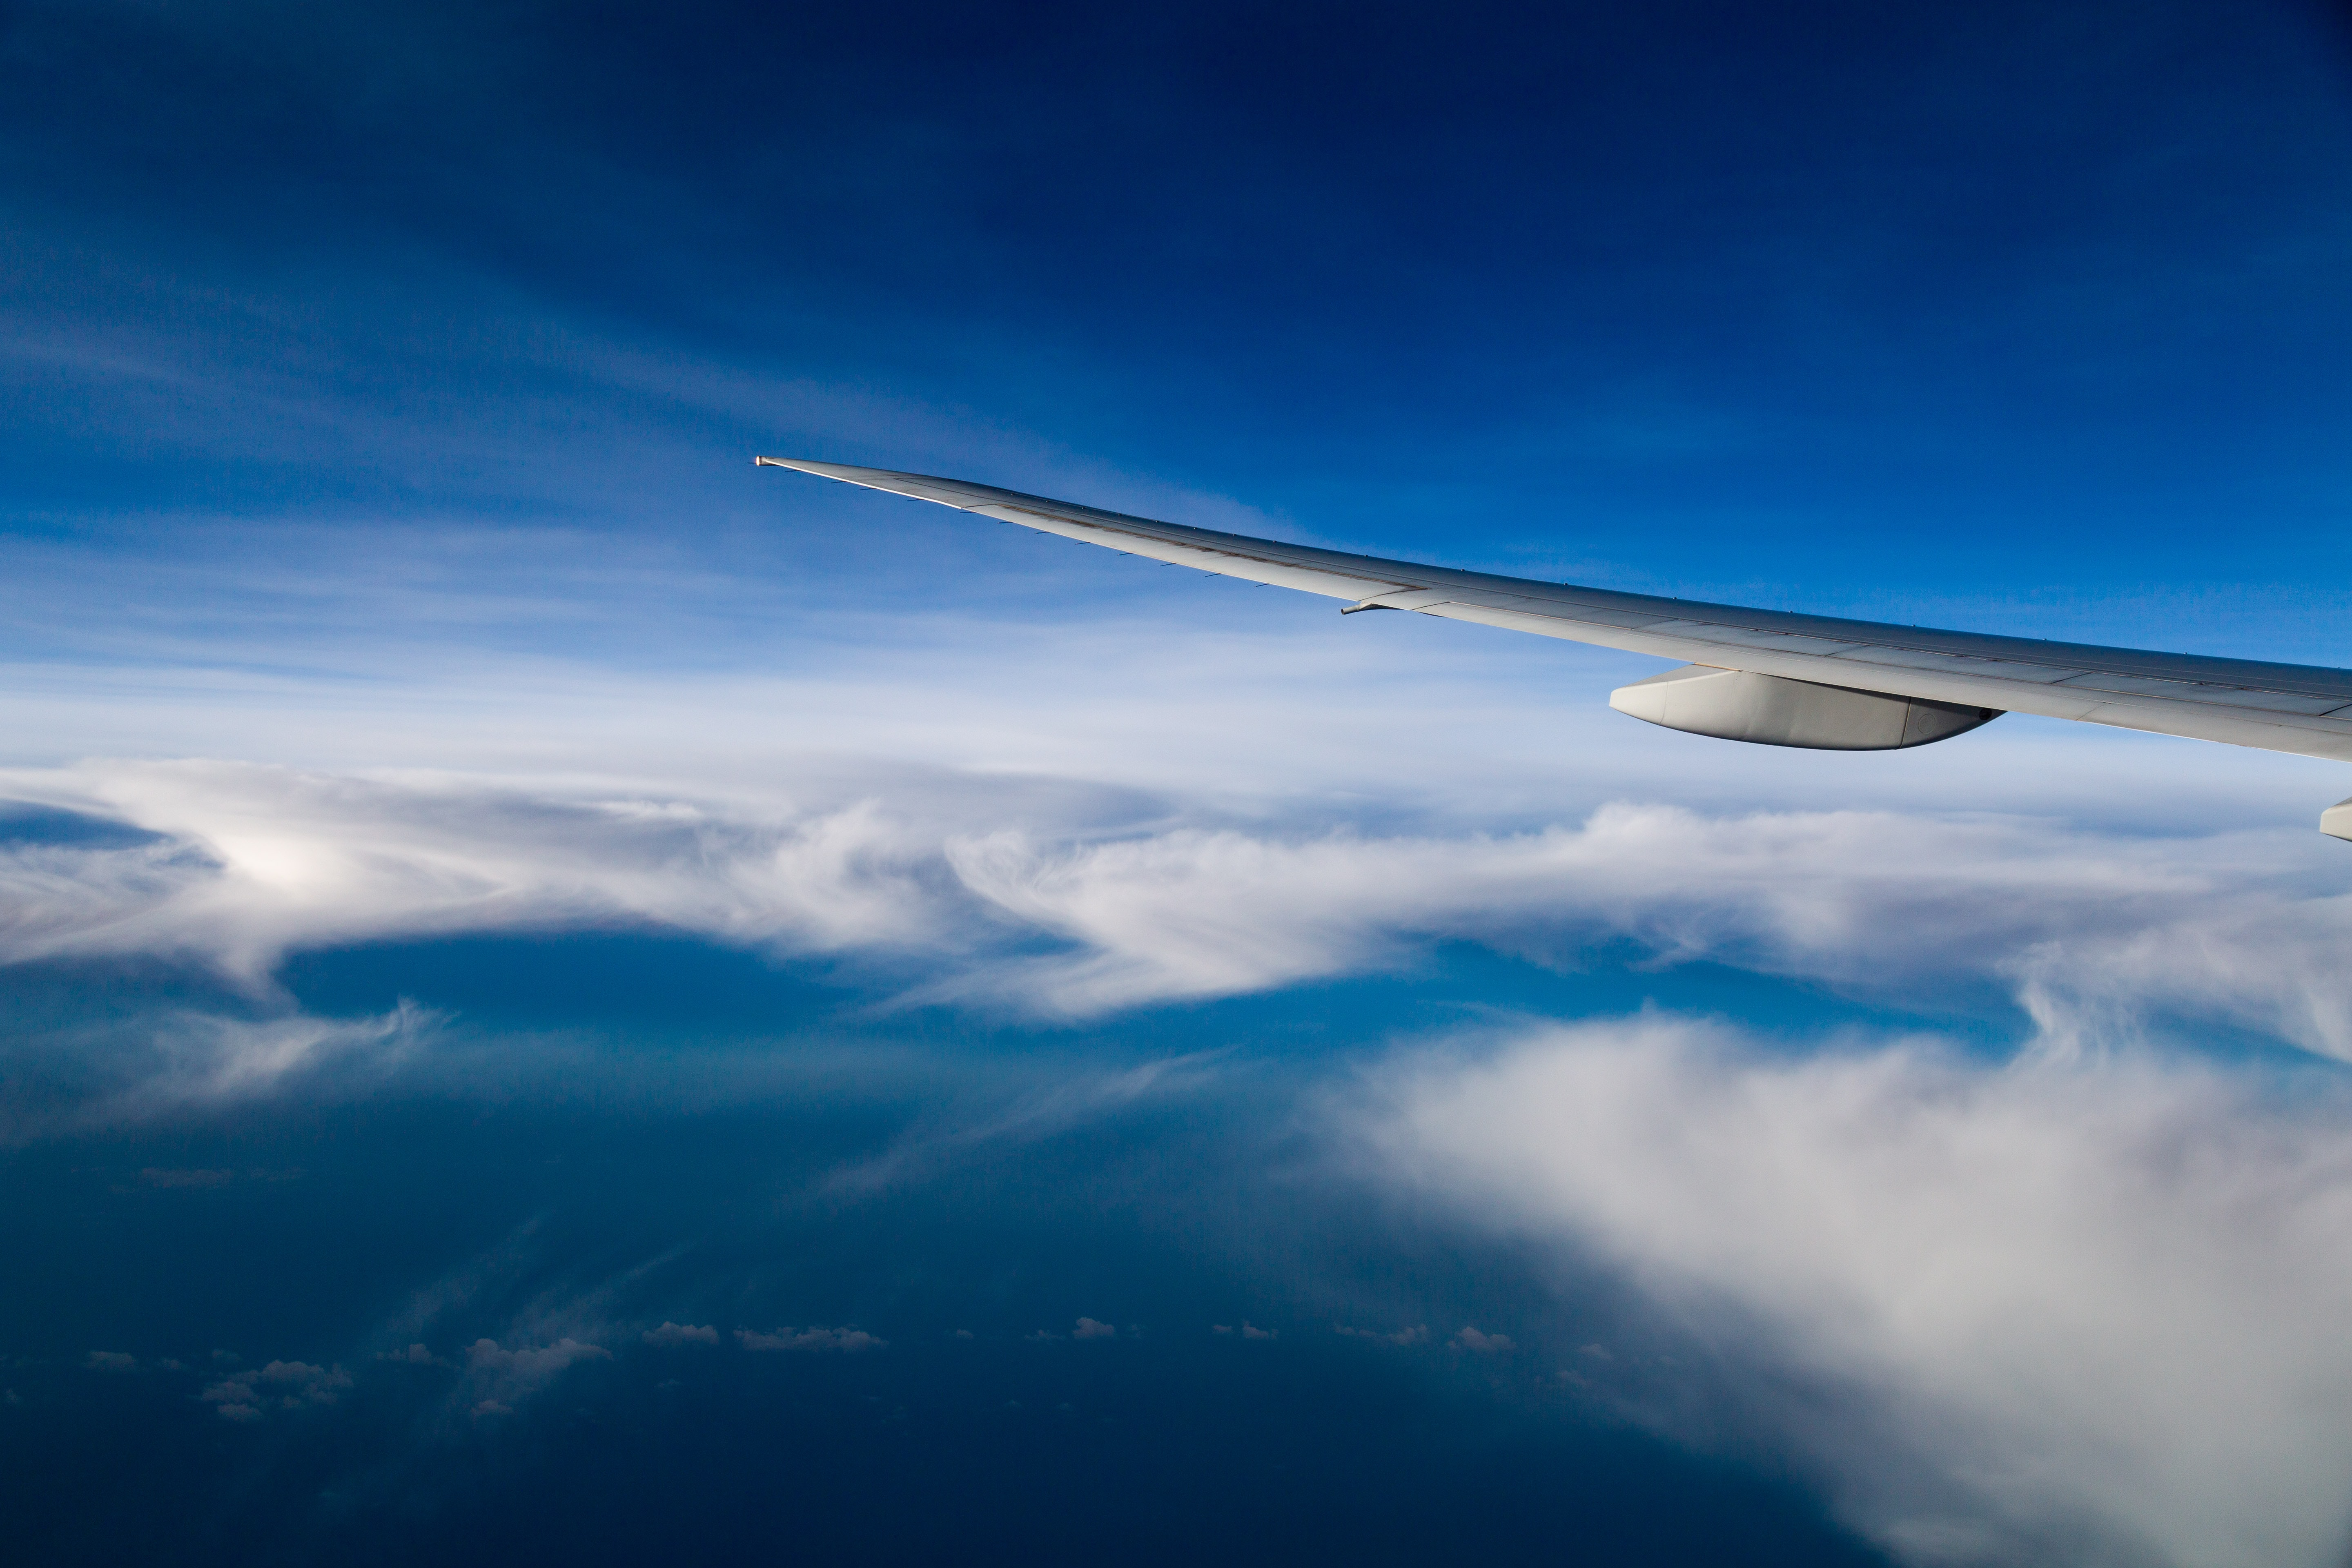 plane over white and blue clouds